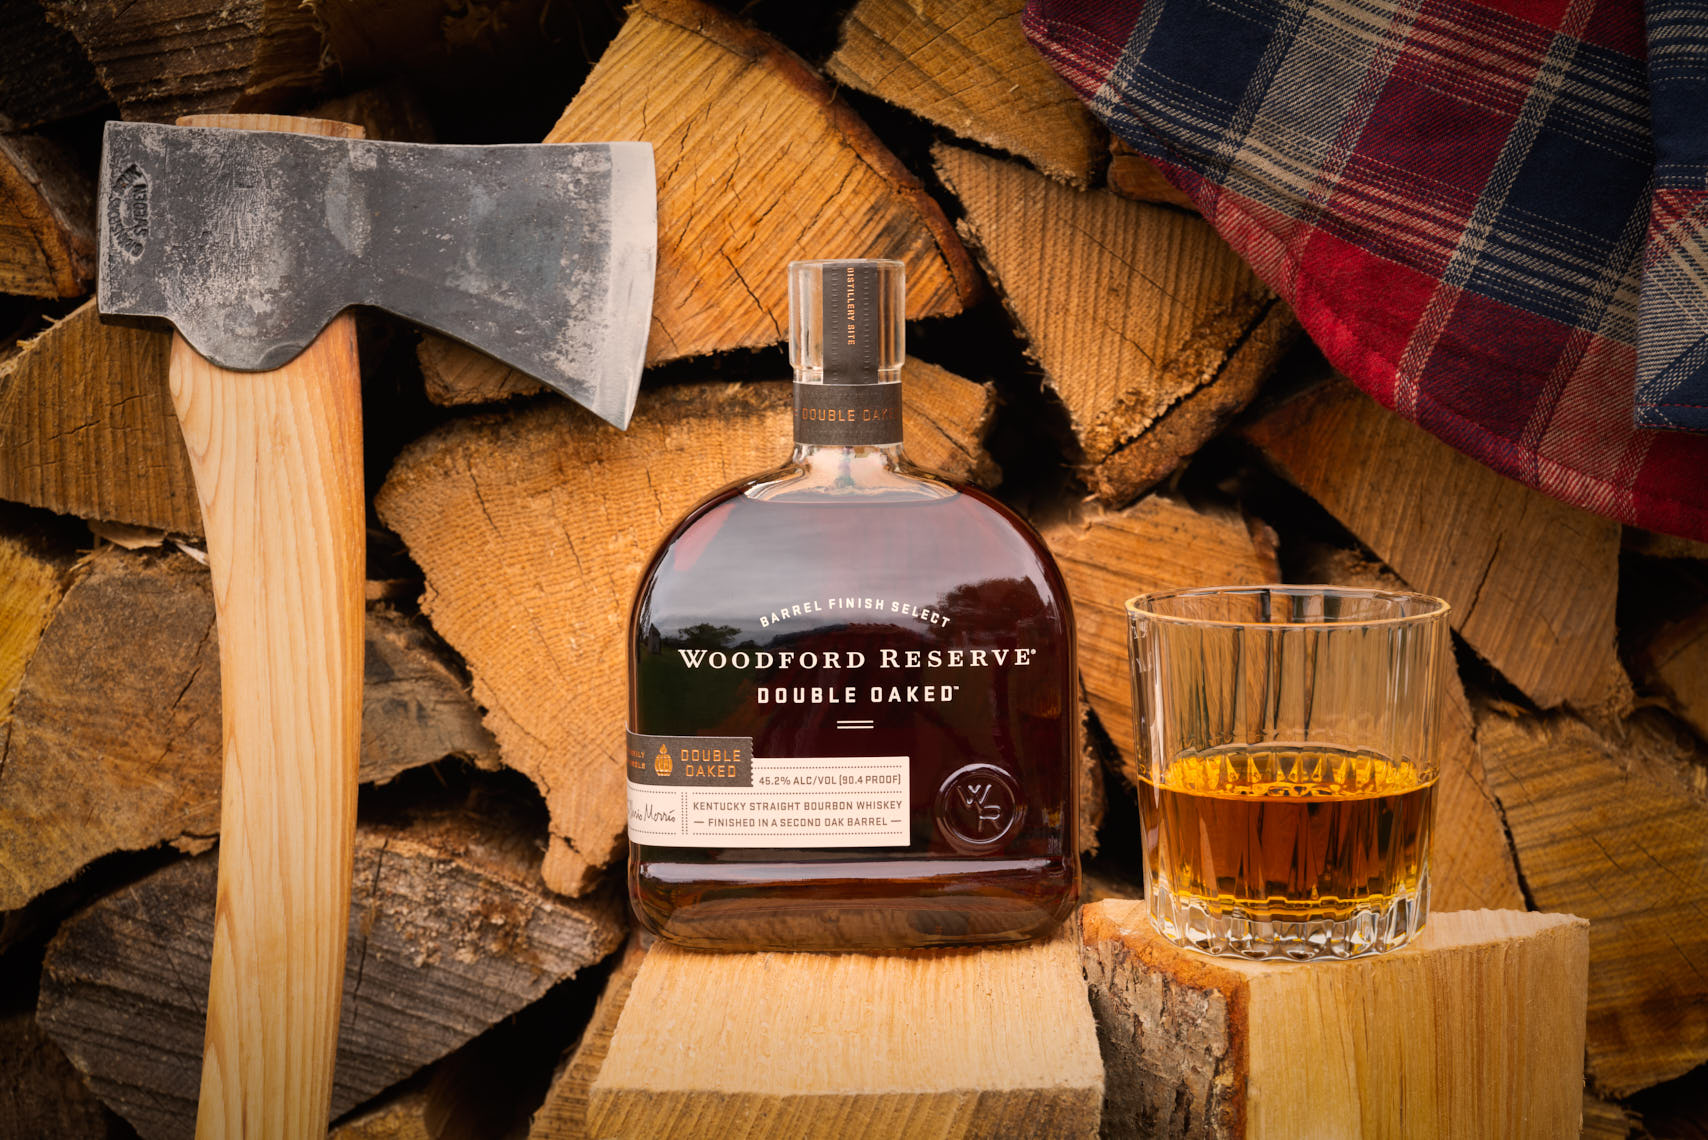 Woodford Reserve - Double Barrel Bourbon - Drink Photographer